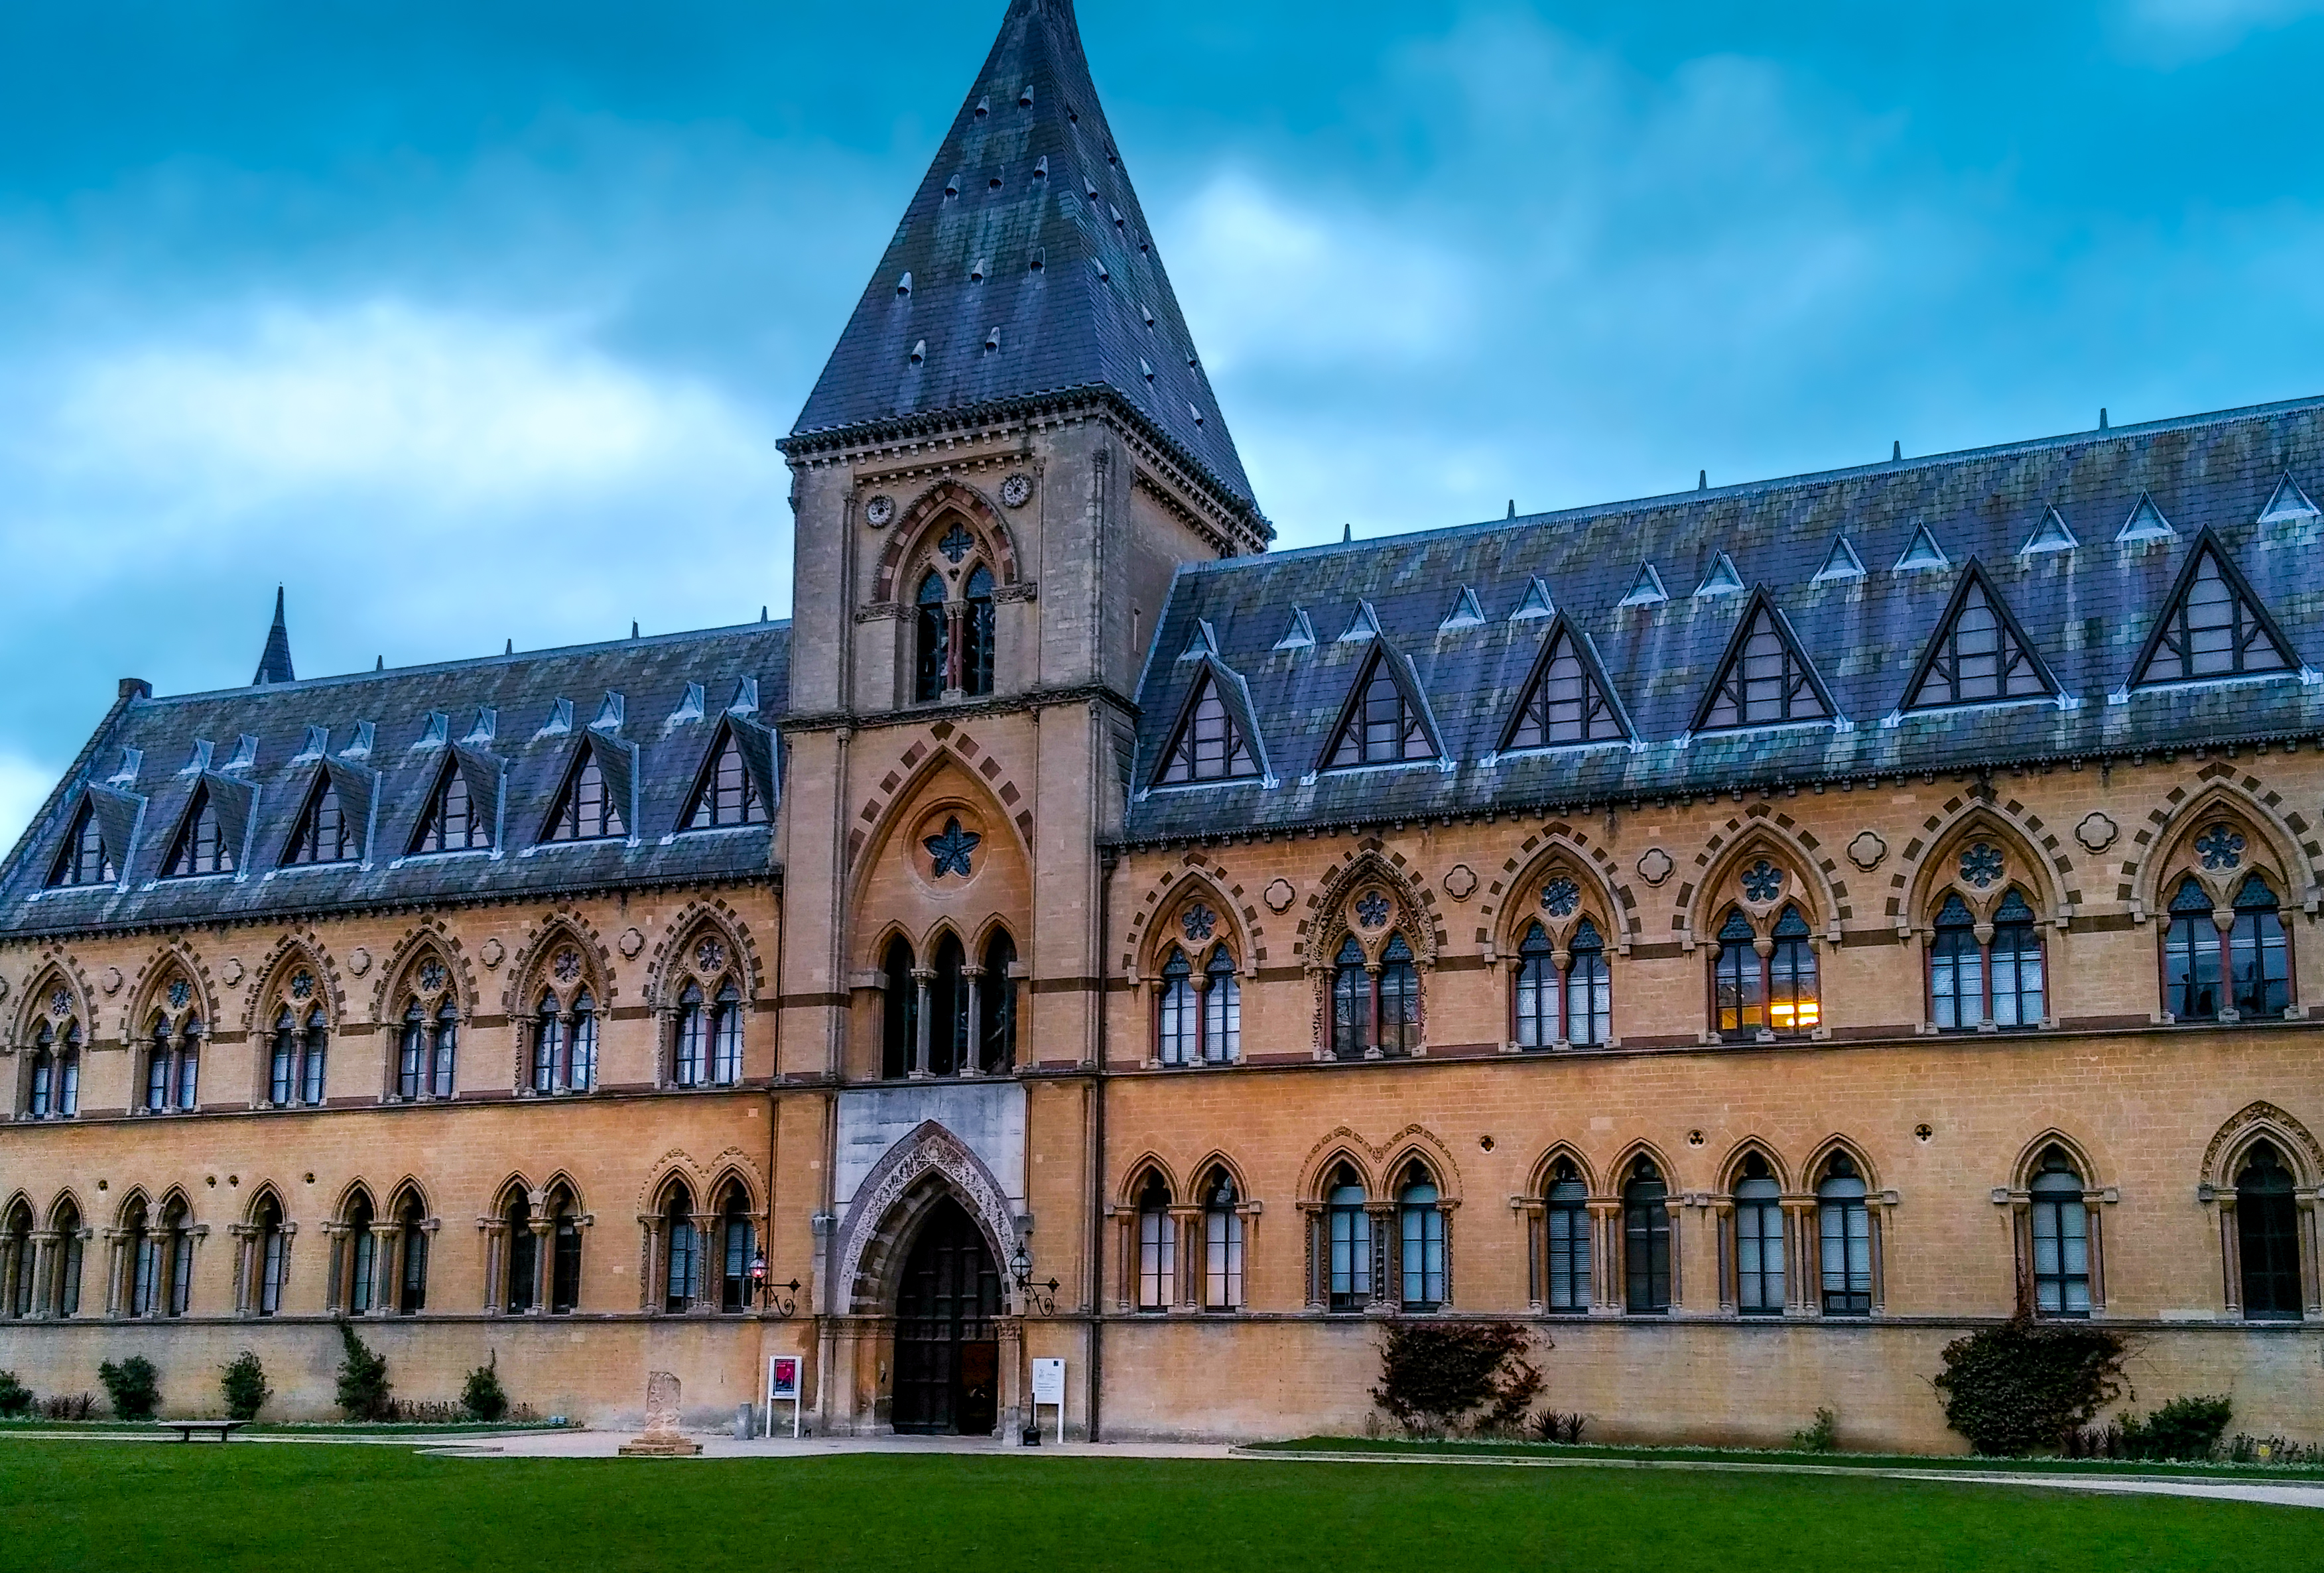 Oxford University Museum of Natural History - Photo by Josh Utley